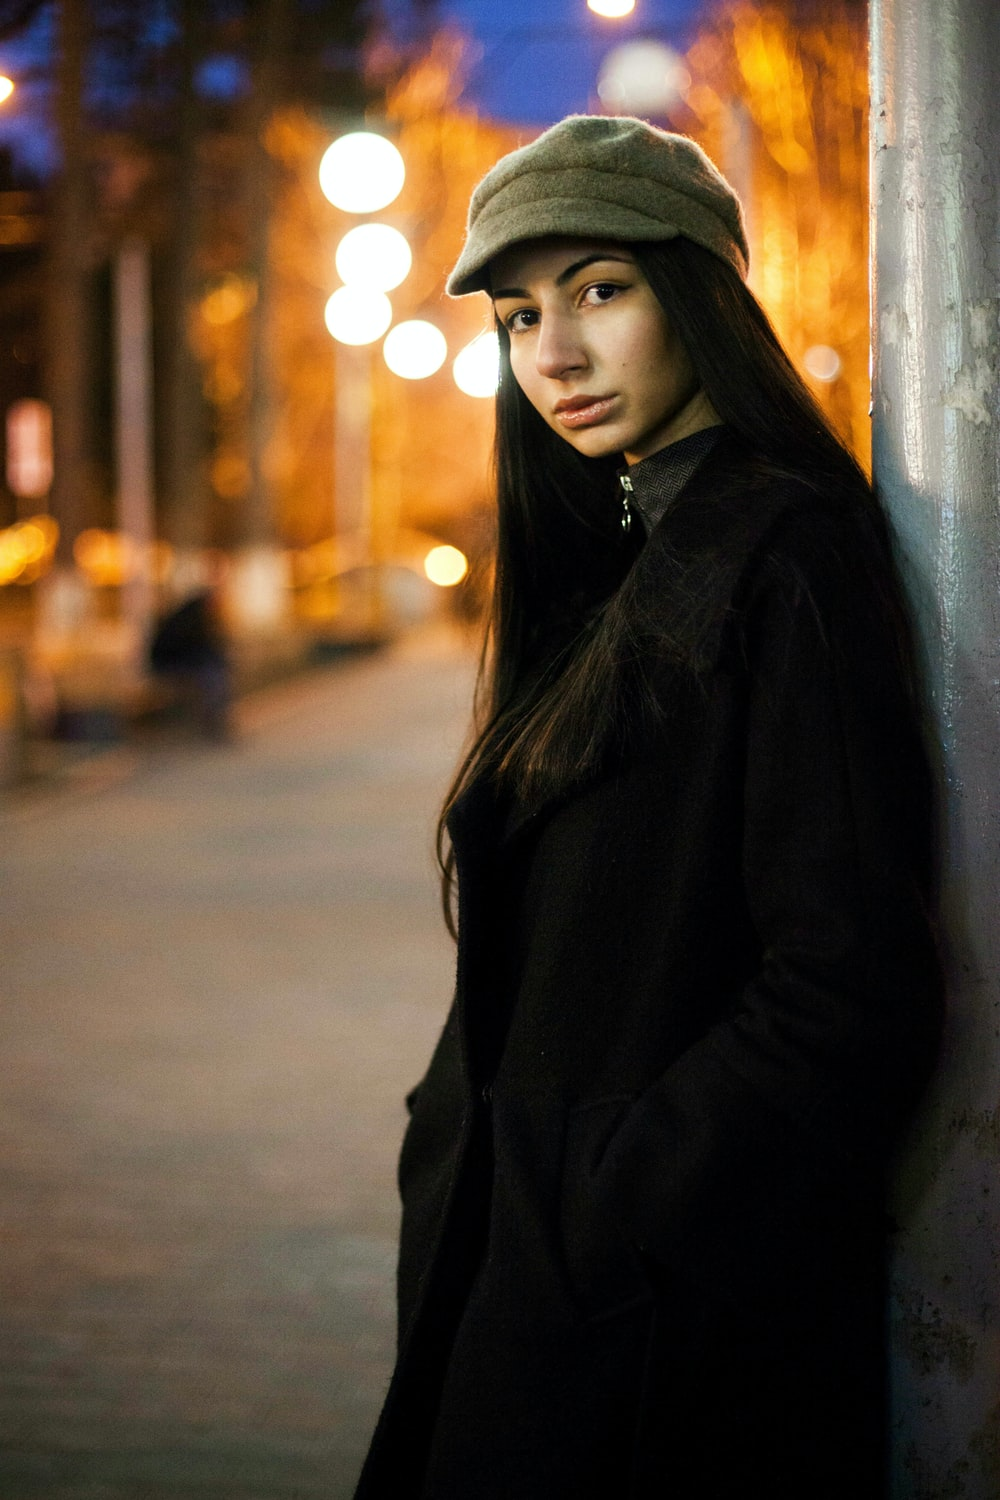 woman in black coat standing near the wall